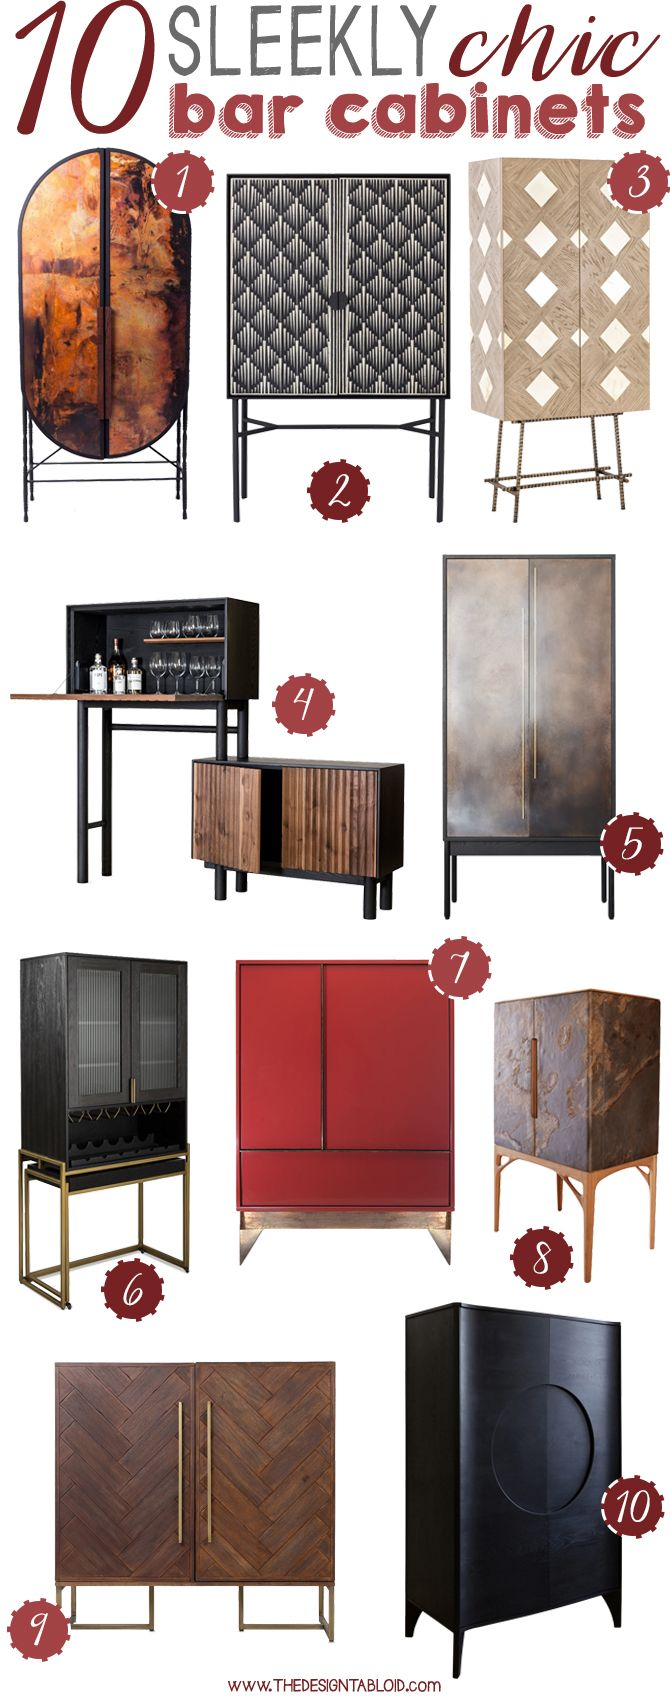 10 Sleek & Chic Bar Cabinets | via The Design Tabloid